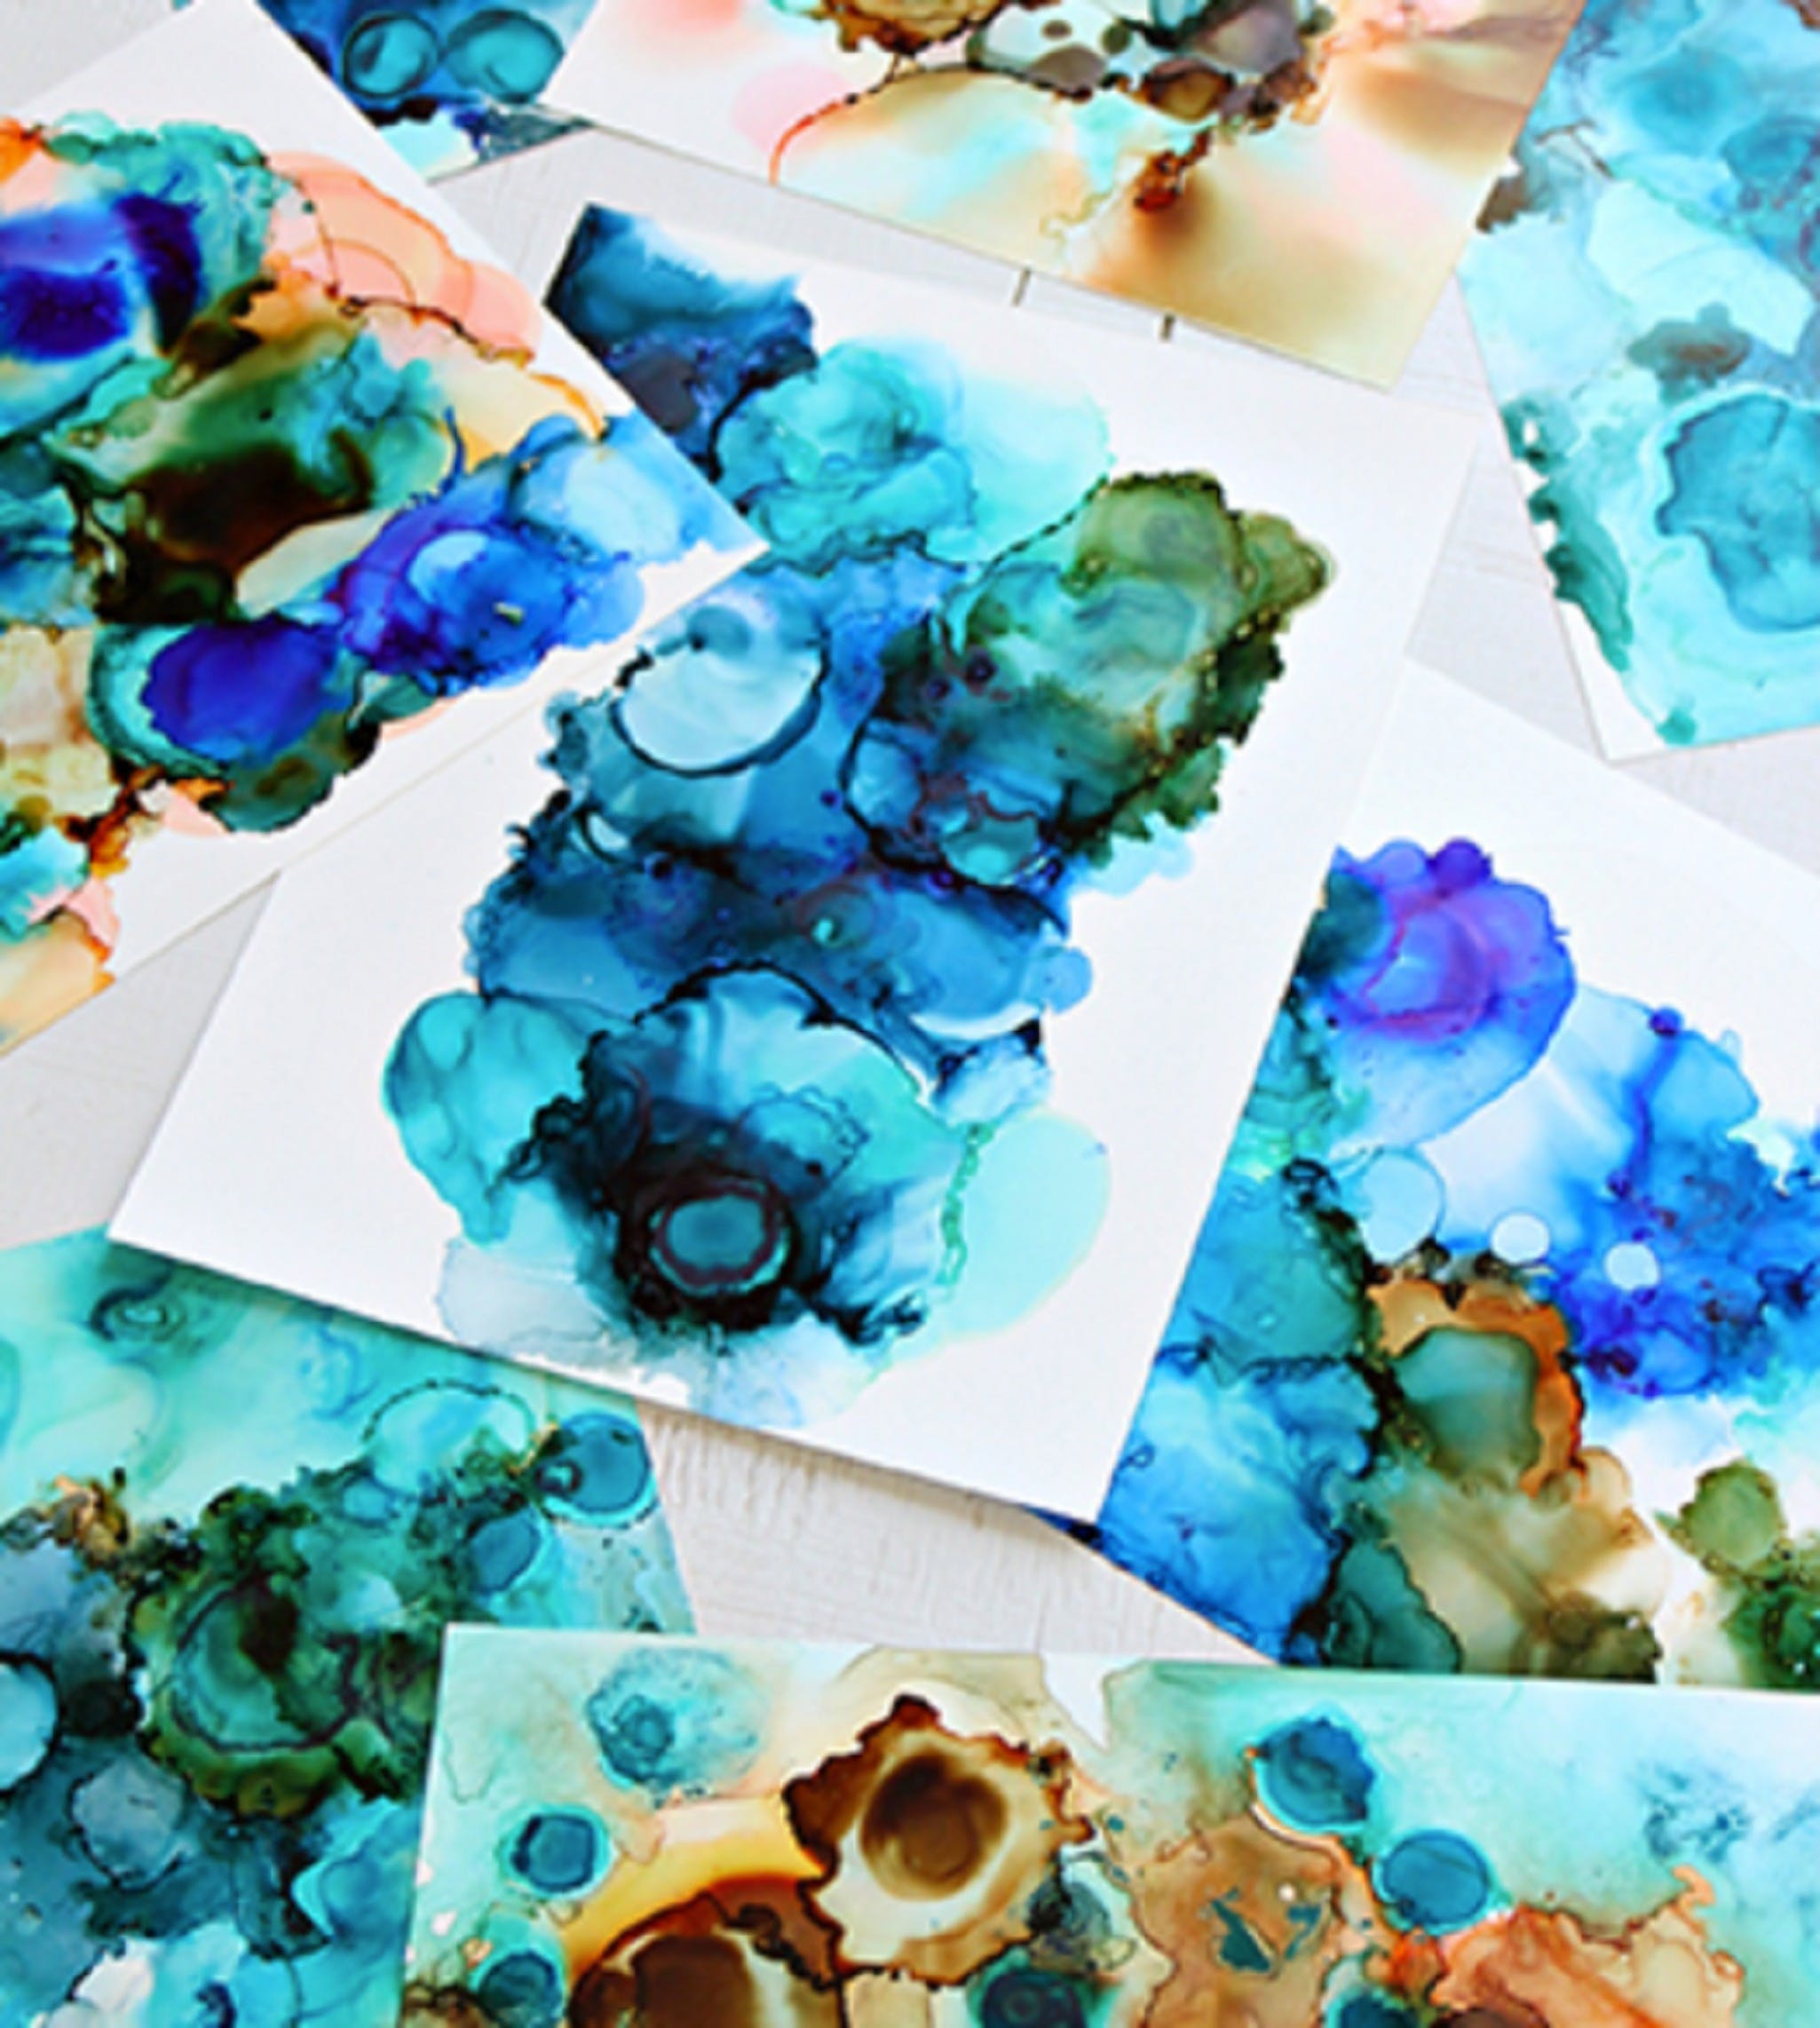 Alcohol Ink Art Class - Broome Tourism